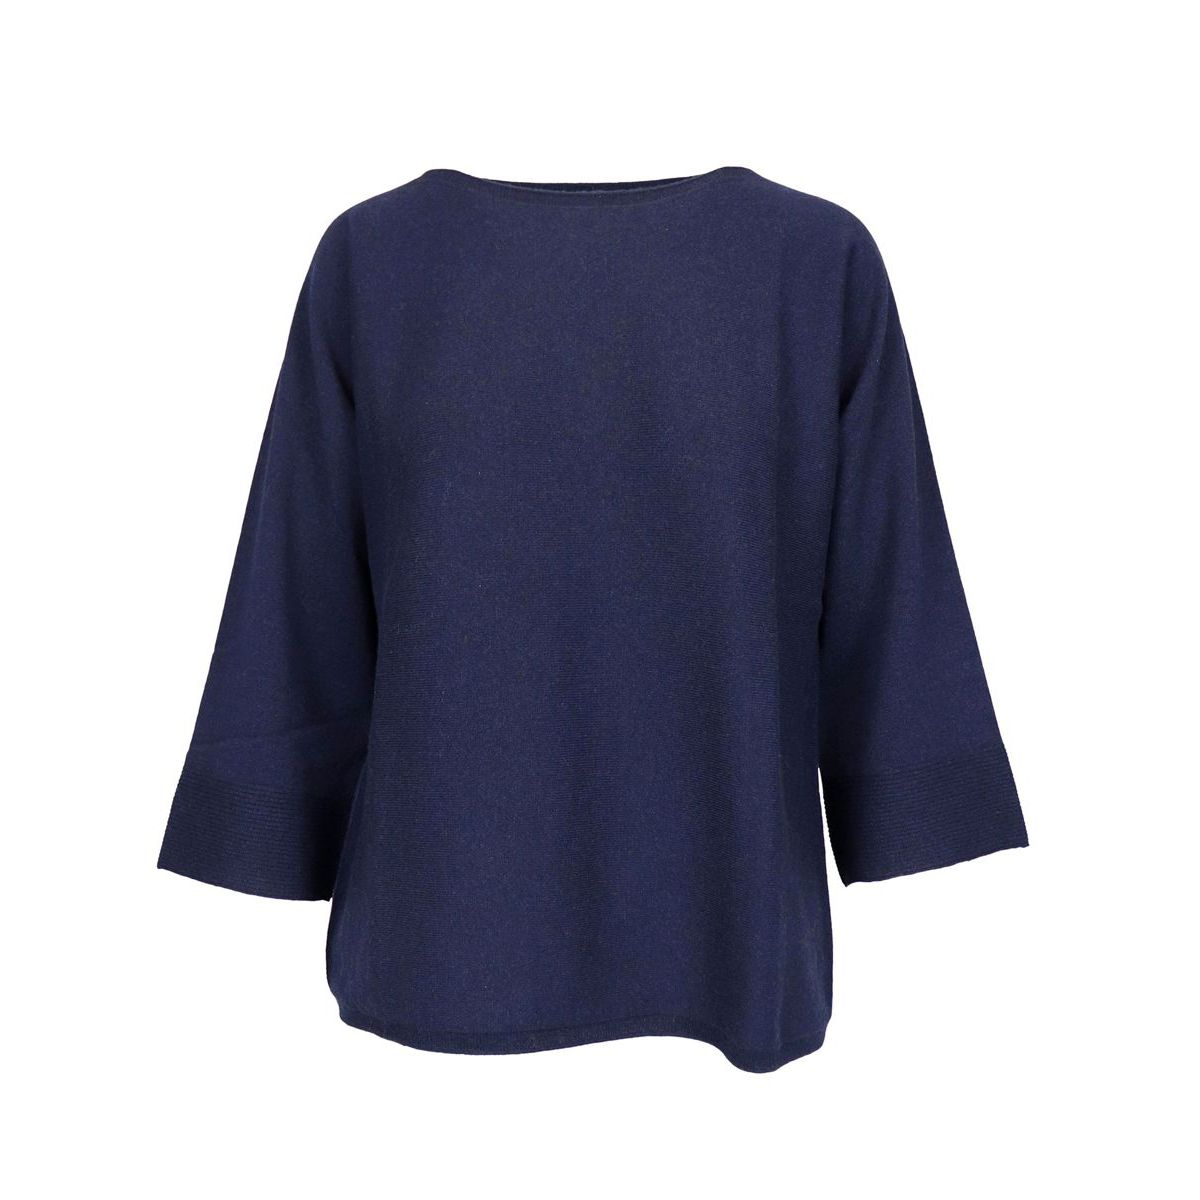 Wool blend sweater with boat neckline and 3/4 sleeves Navy Gran Sasso